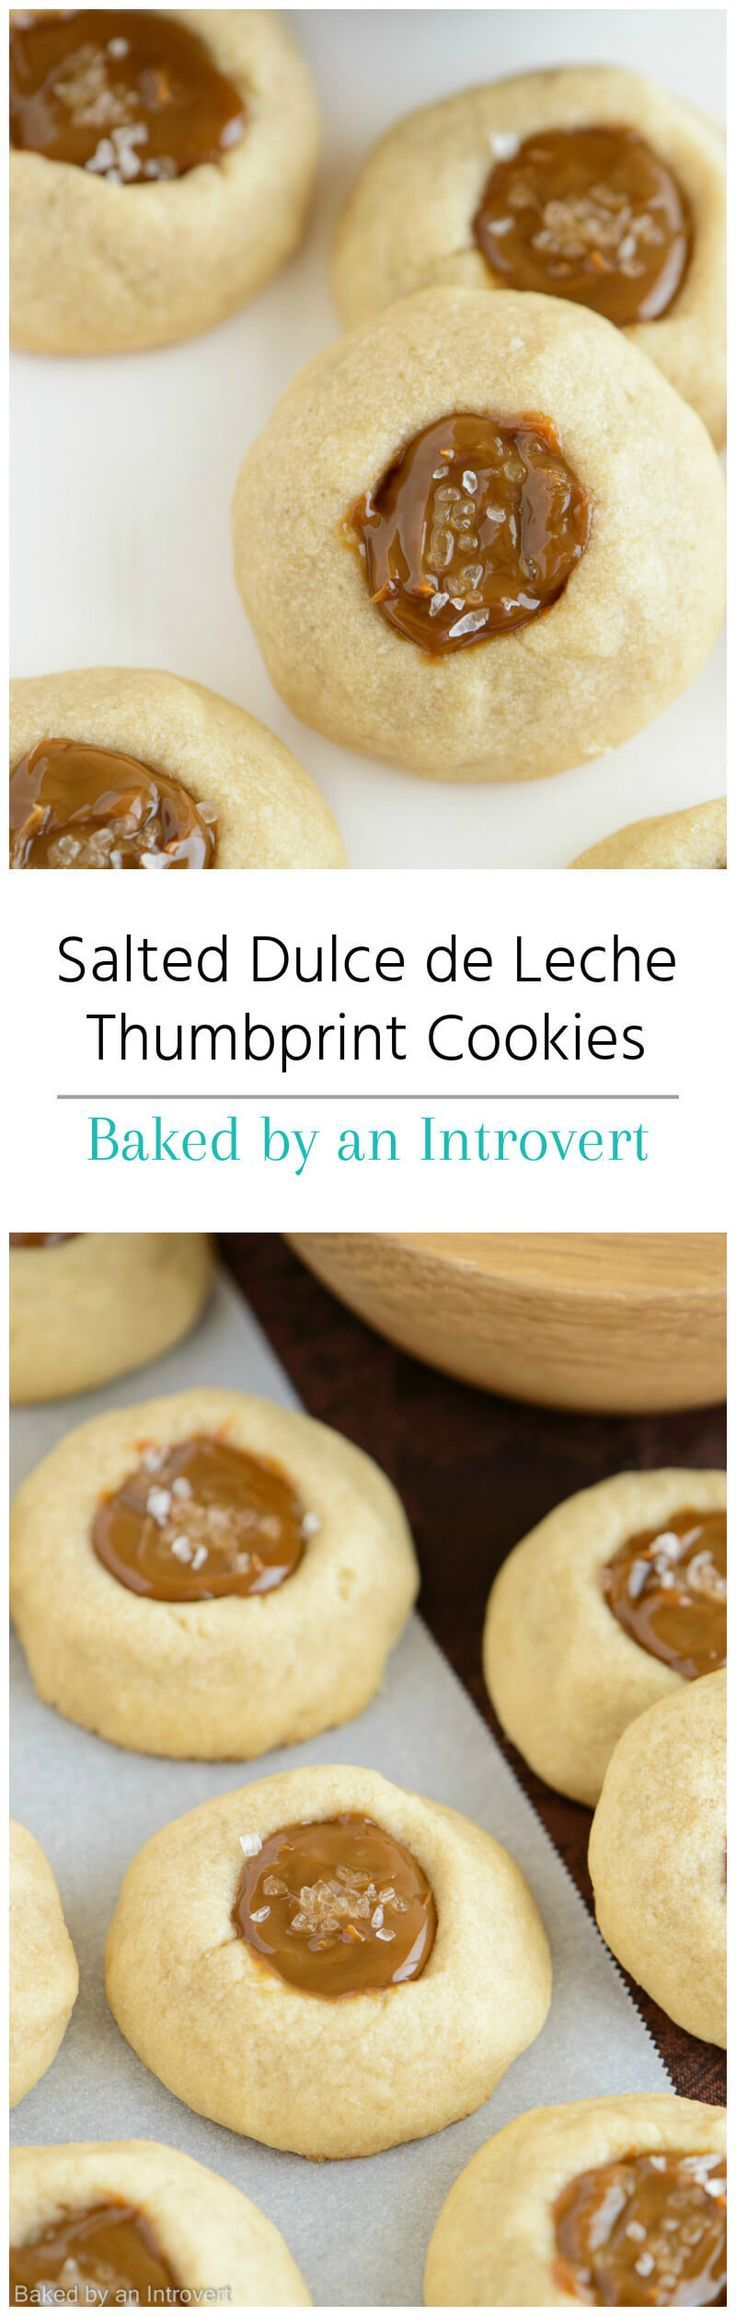 Salted Dulce de Leche Thumbprint Cookies Recipe from bakedbyanintrovert.com